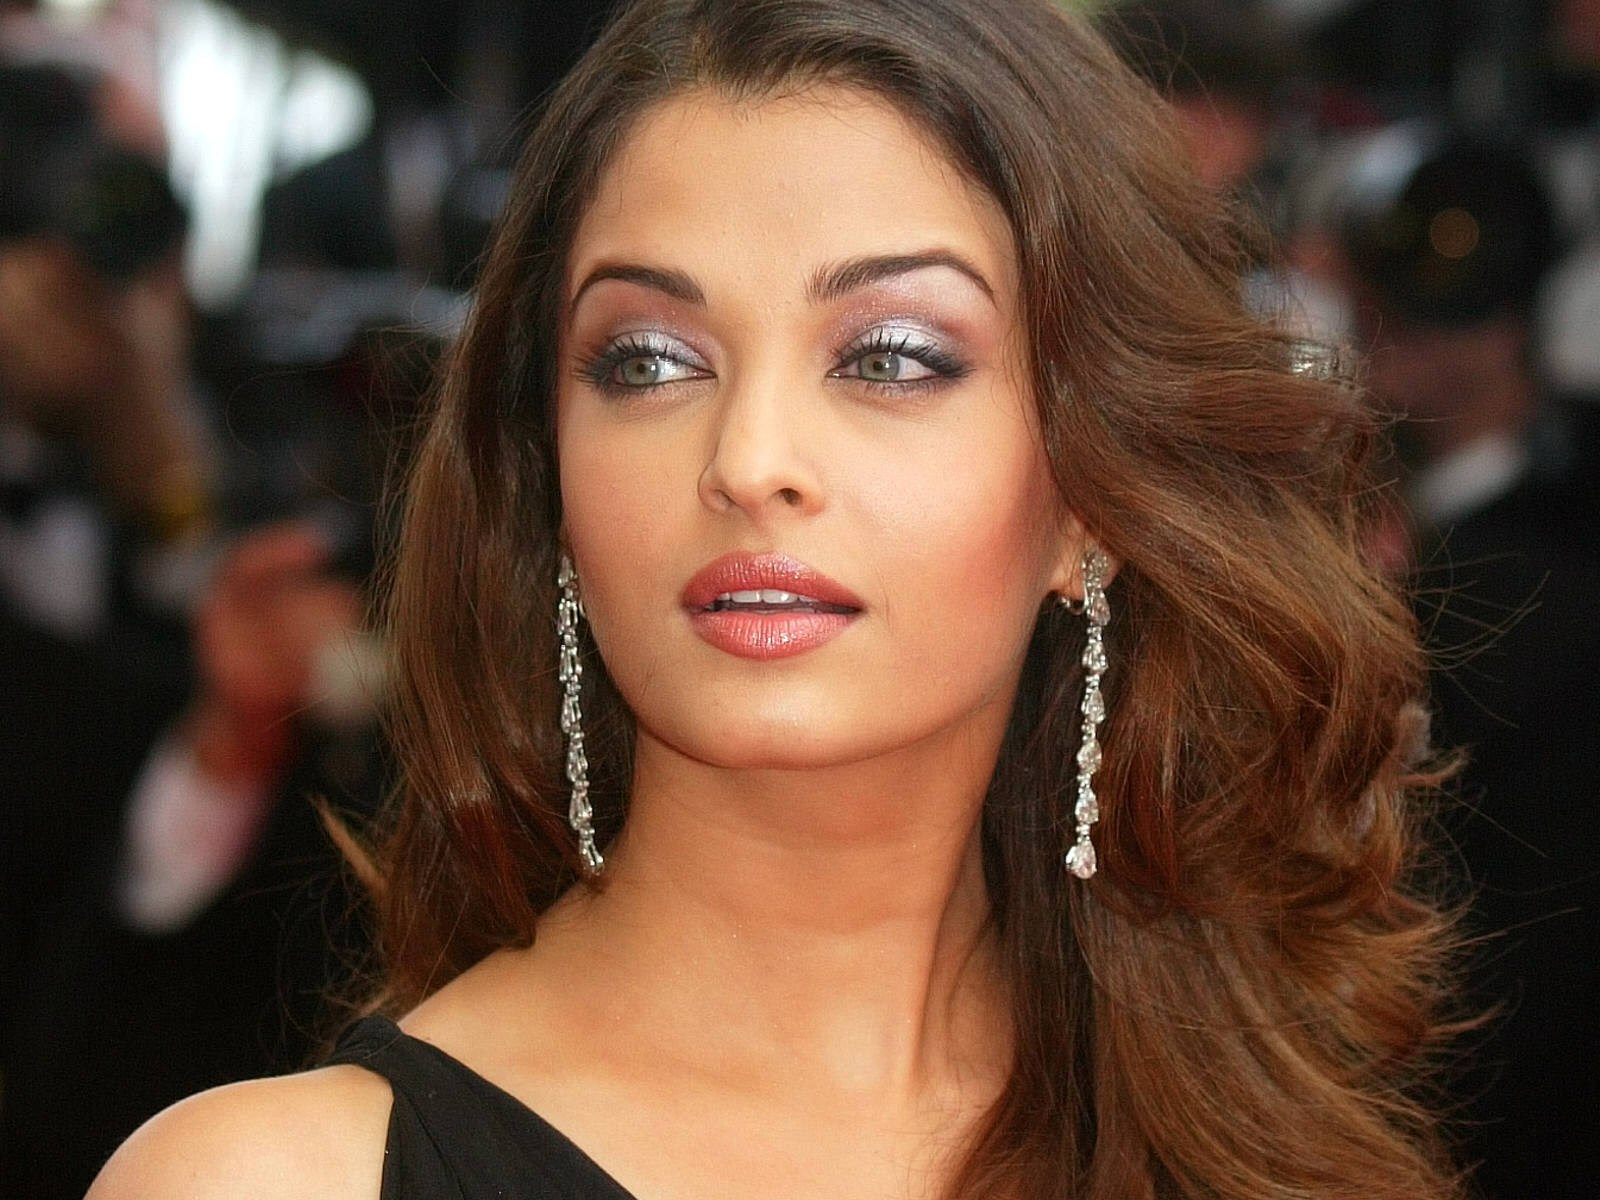 Aishwarya Rai Latest Romance Hairstyles, Long Hairstyle 2013, Hairstyle 2013, New Long Hairstyle 2013, Celebrity Long Romance Hairstyles 2153